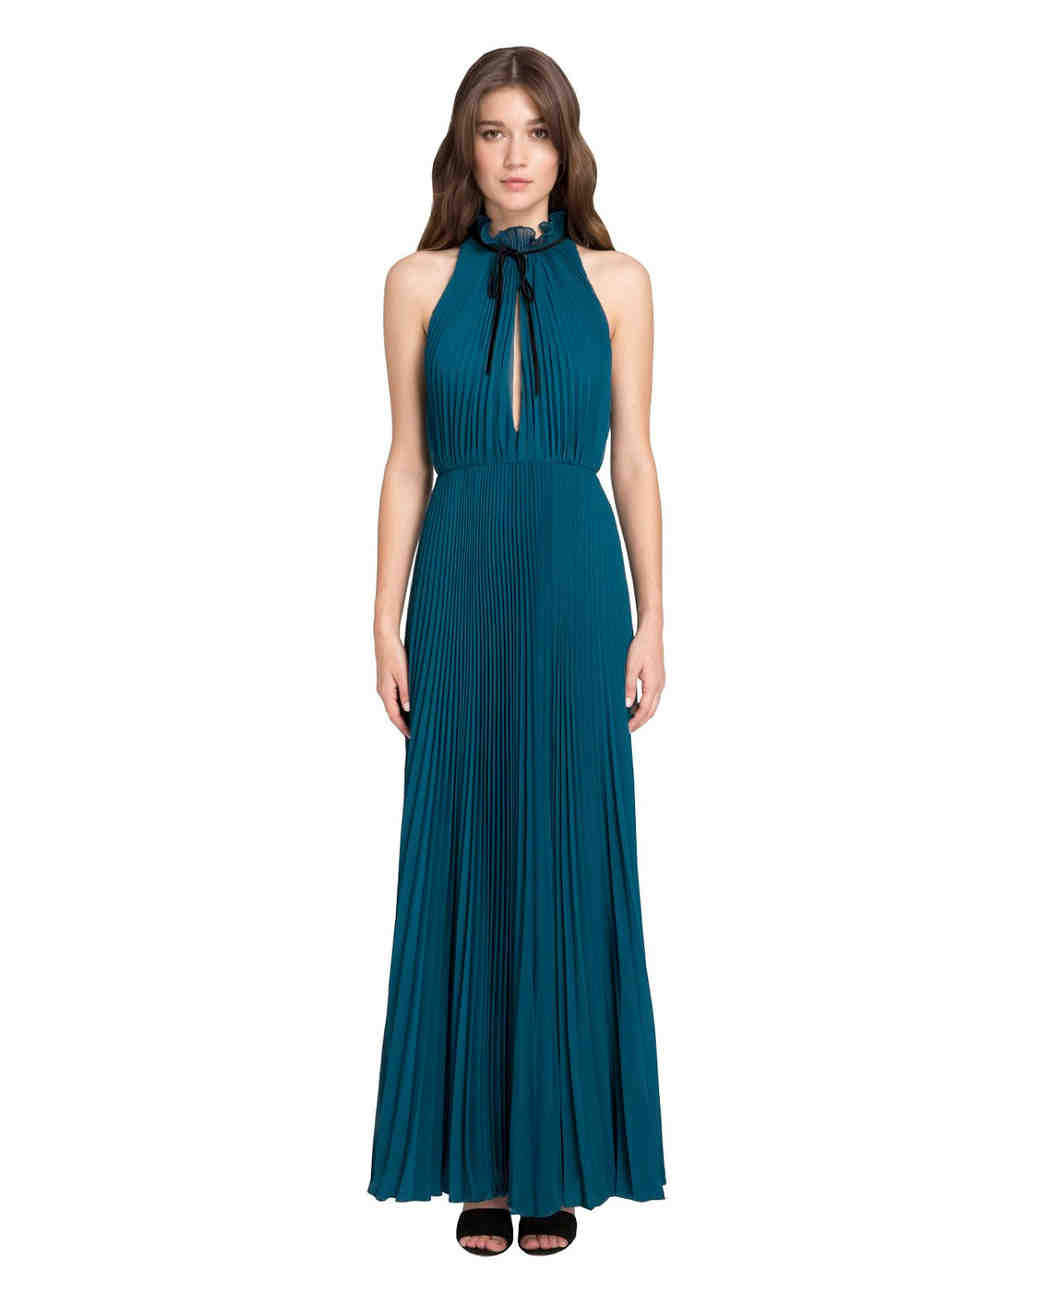 Beautiful Dresses To Wear To A Wedding: 25 Beautiful Dresses To Wear As A Wedding Guest This Fall